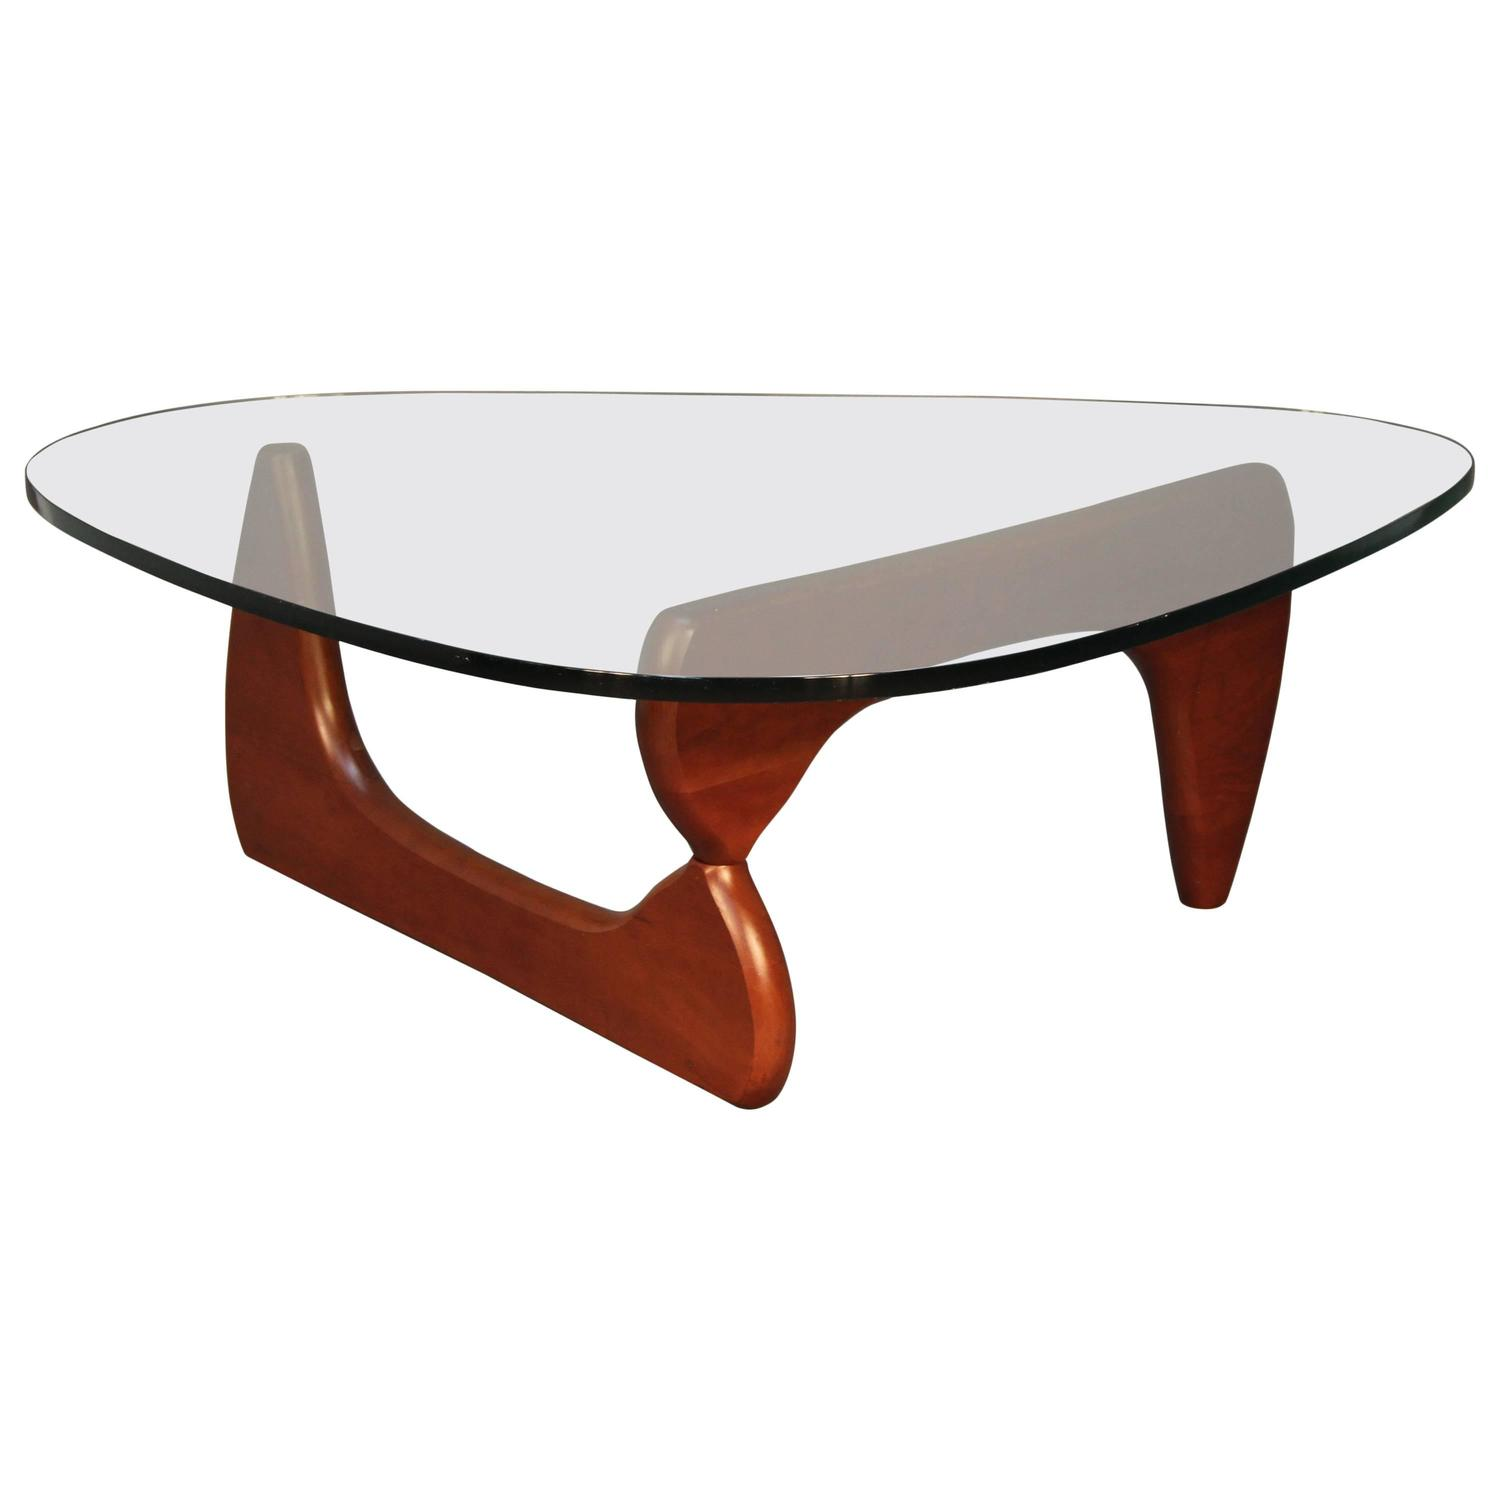 isamu noguchi sculptural coffee table at 1stdibs. Black Bedroom Furniture Sets. Home Design Ideas